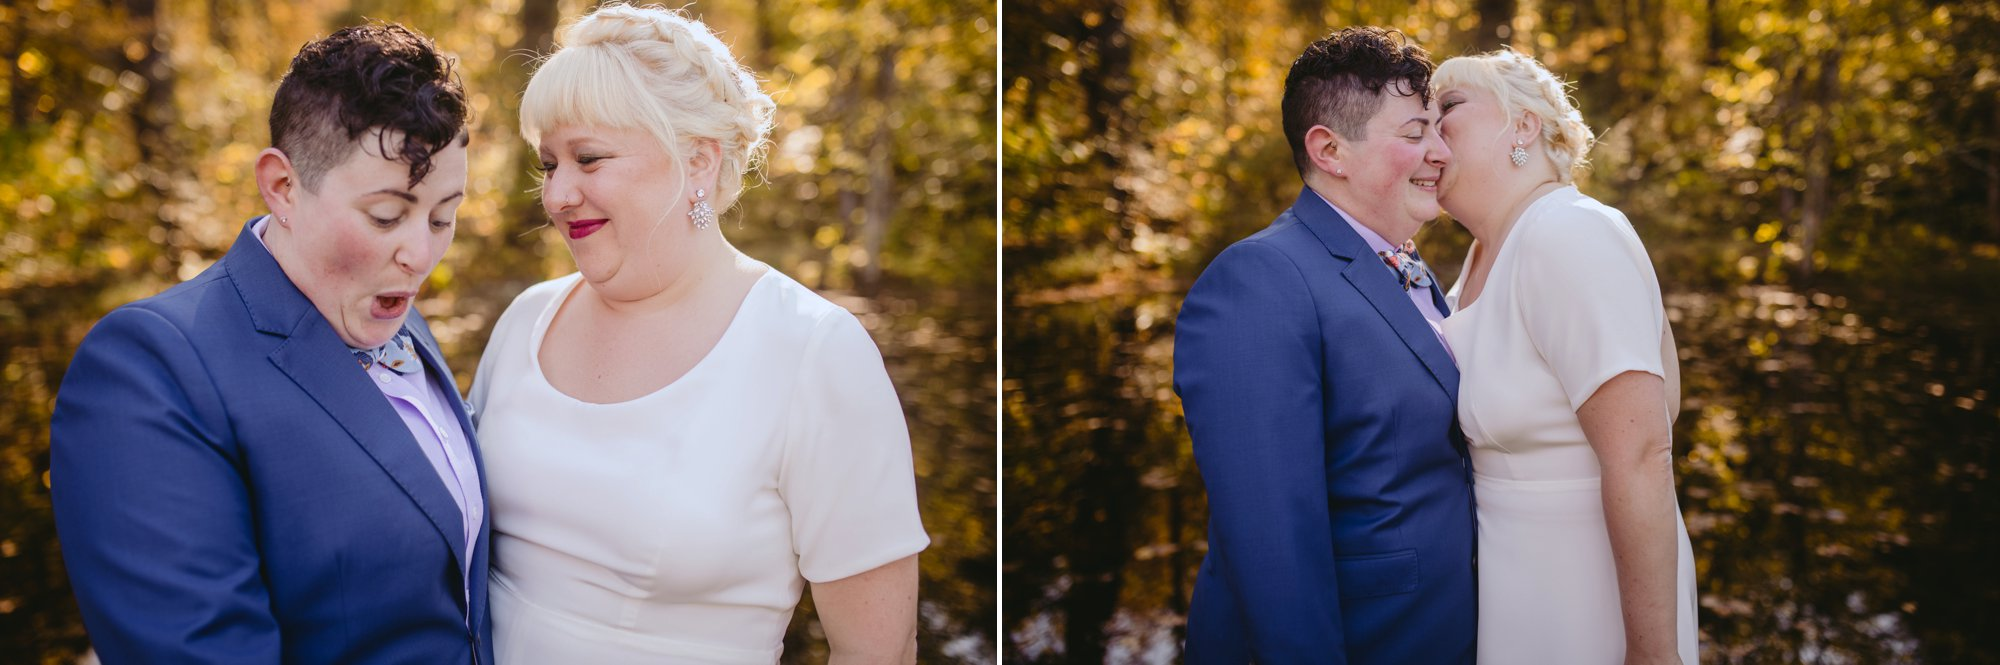 October Jewish lesbian wedding at Foxfire Mountain House in Upstate New York. Sharing a secret.